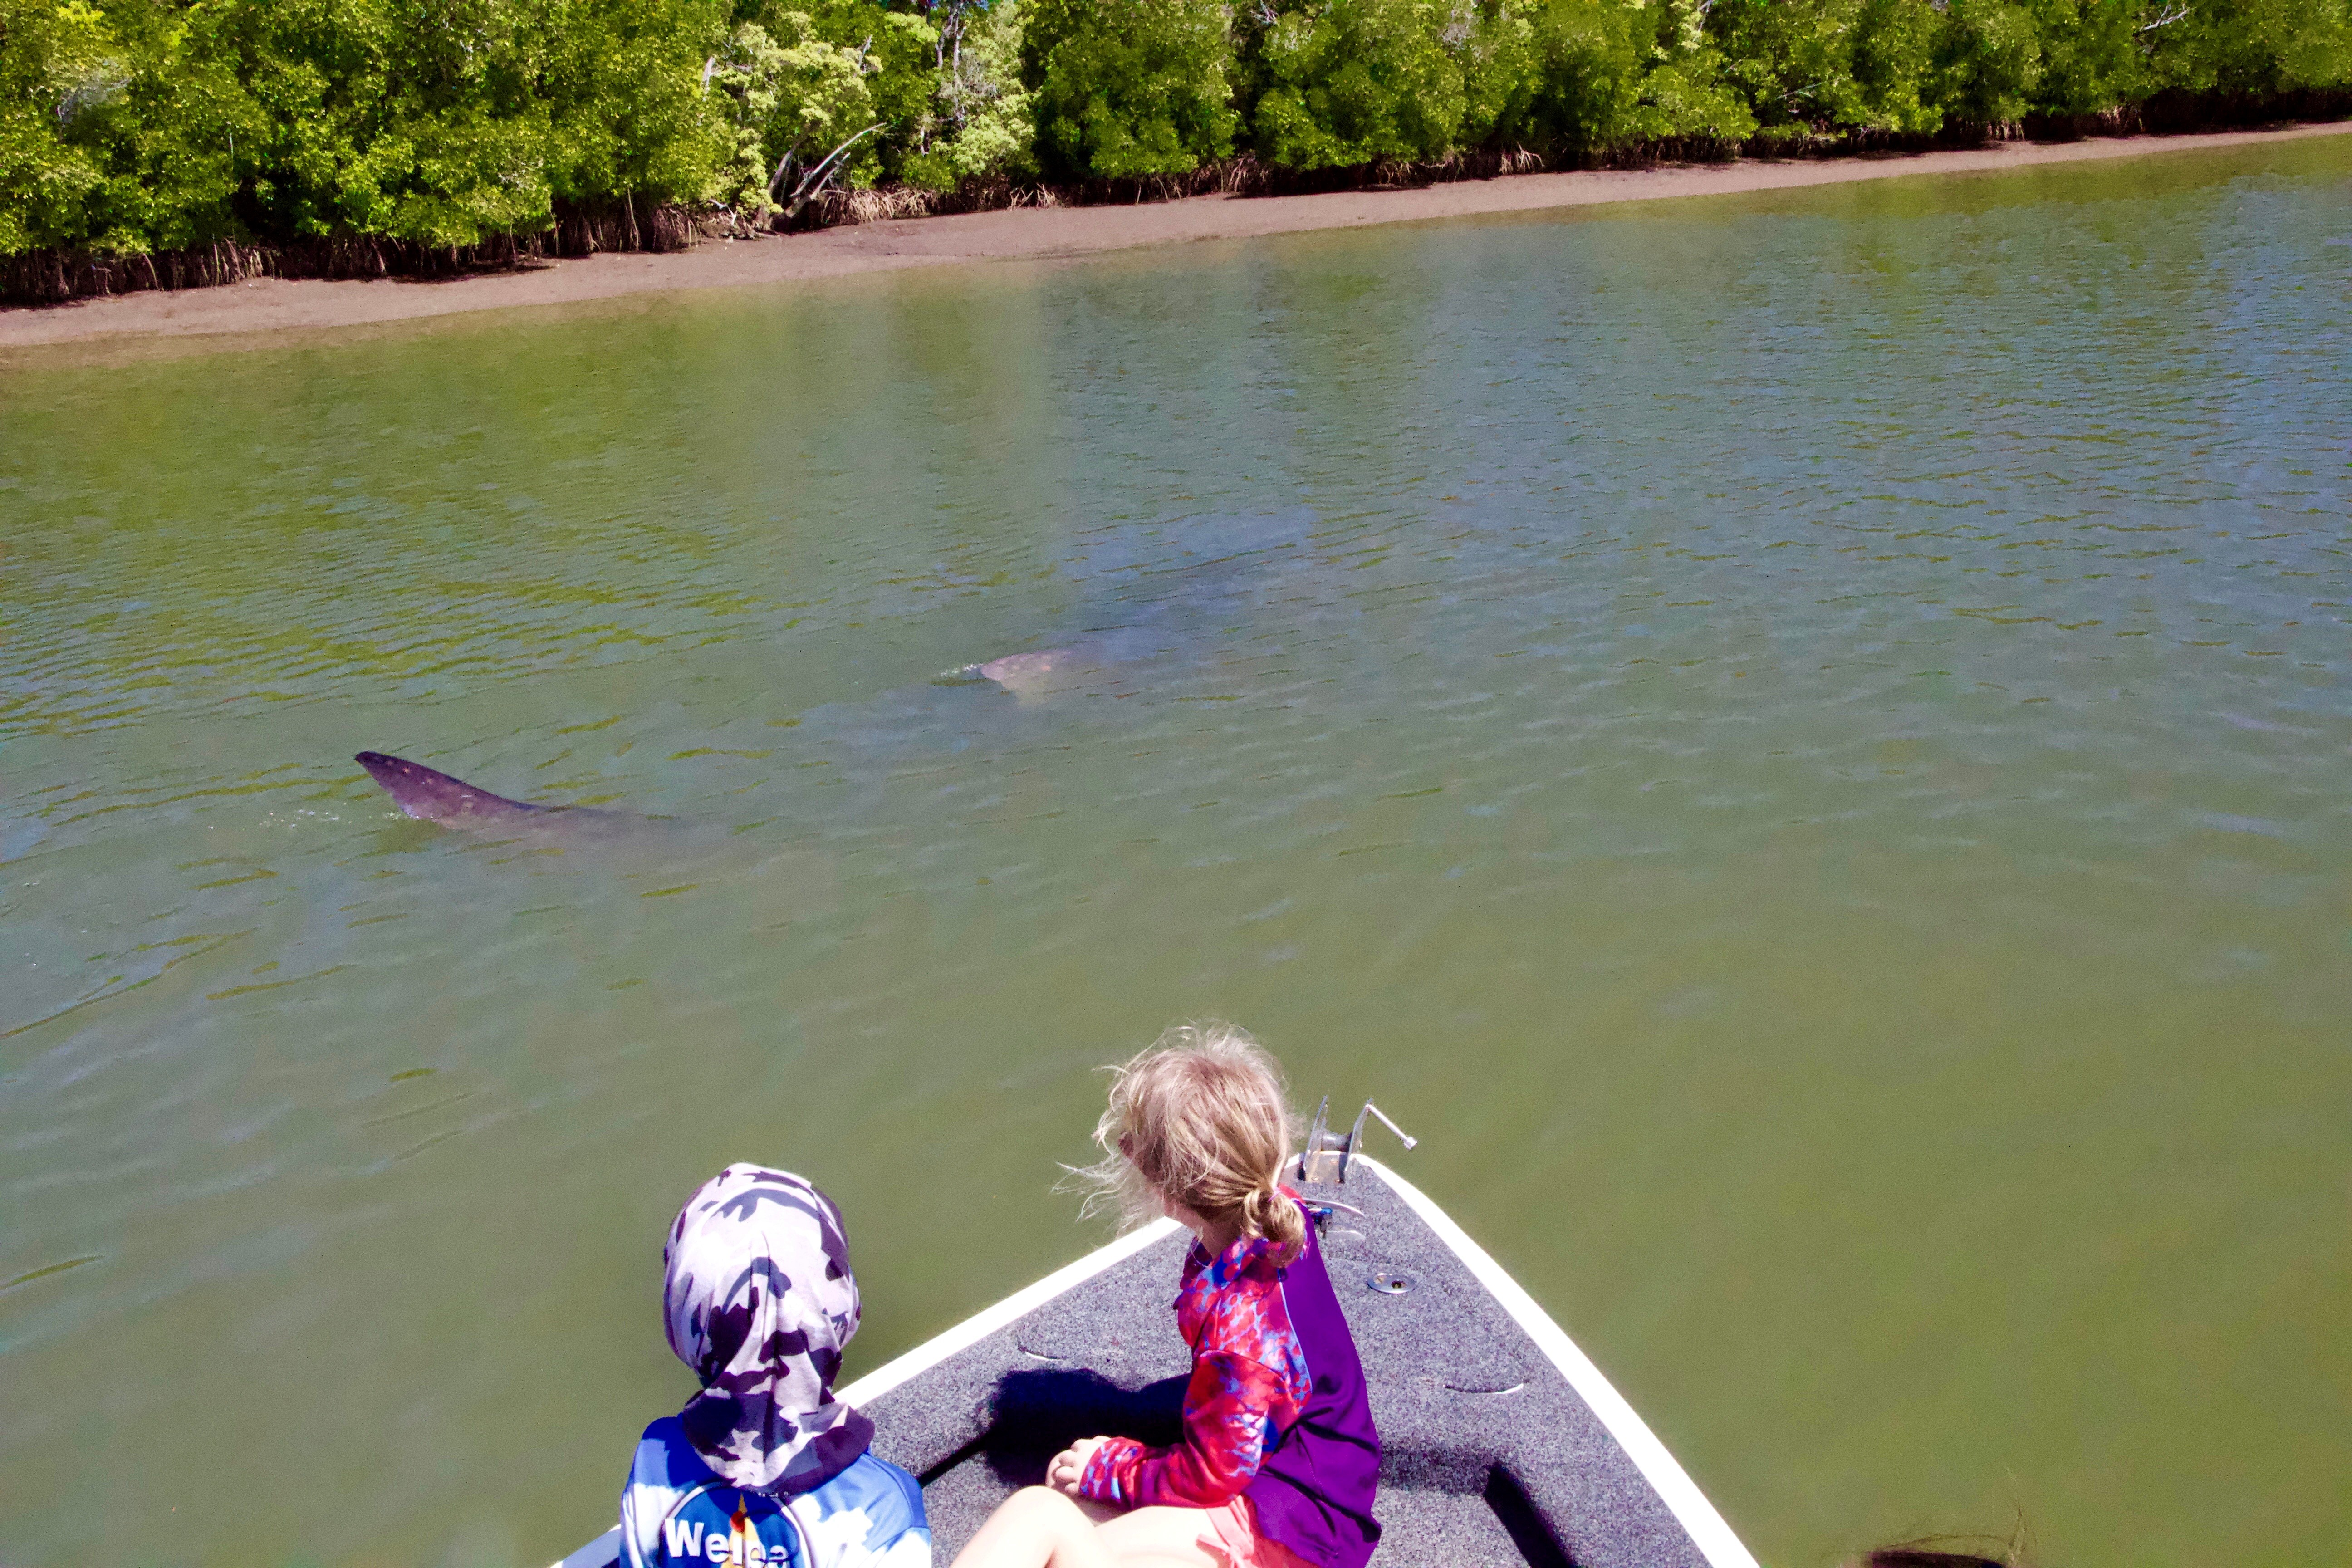 two small children in a boat with a whale shark visible in the river in the background